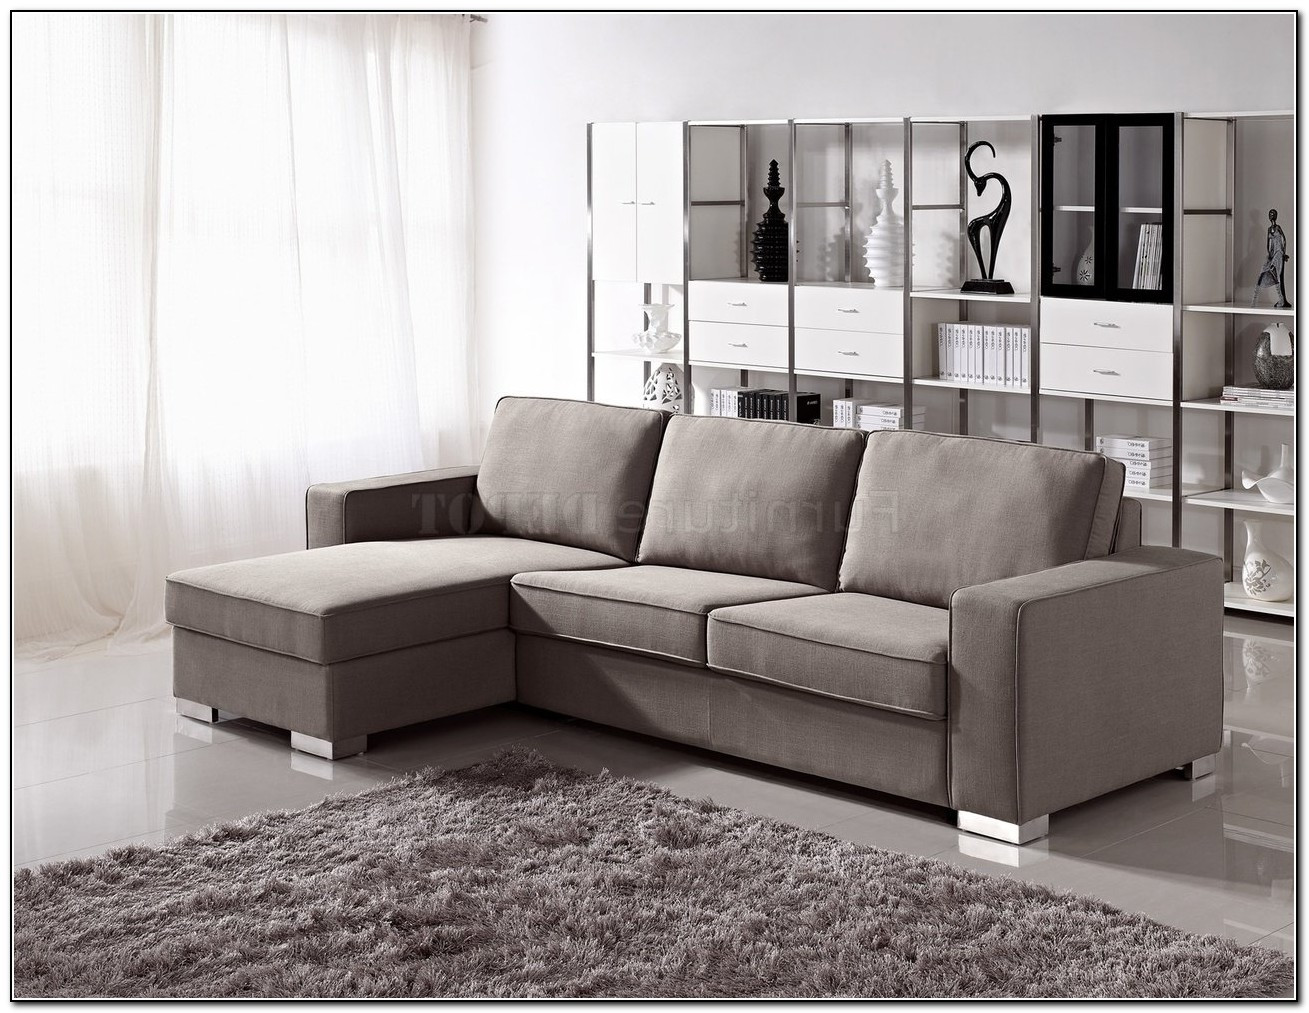 Best ideas about Sofa Bed Sectional . Save or Pin Convertible Sectional Sofa Bed Beds Home Design Ideas Now.